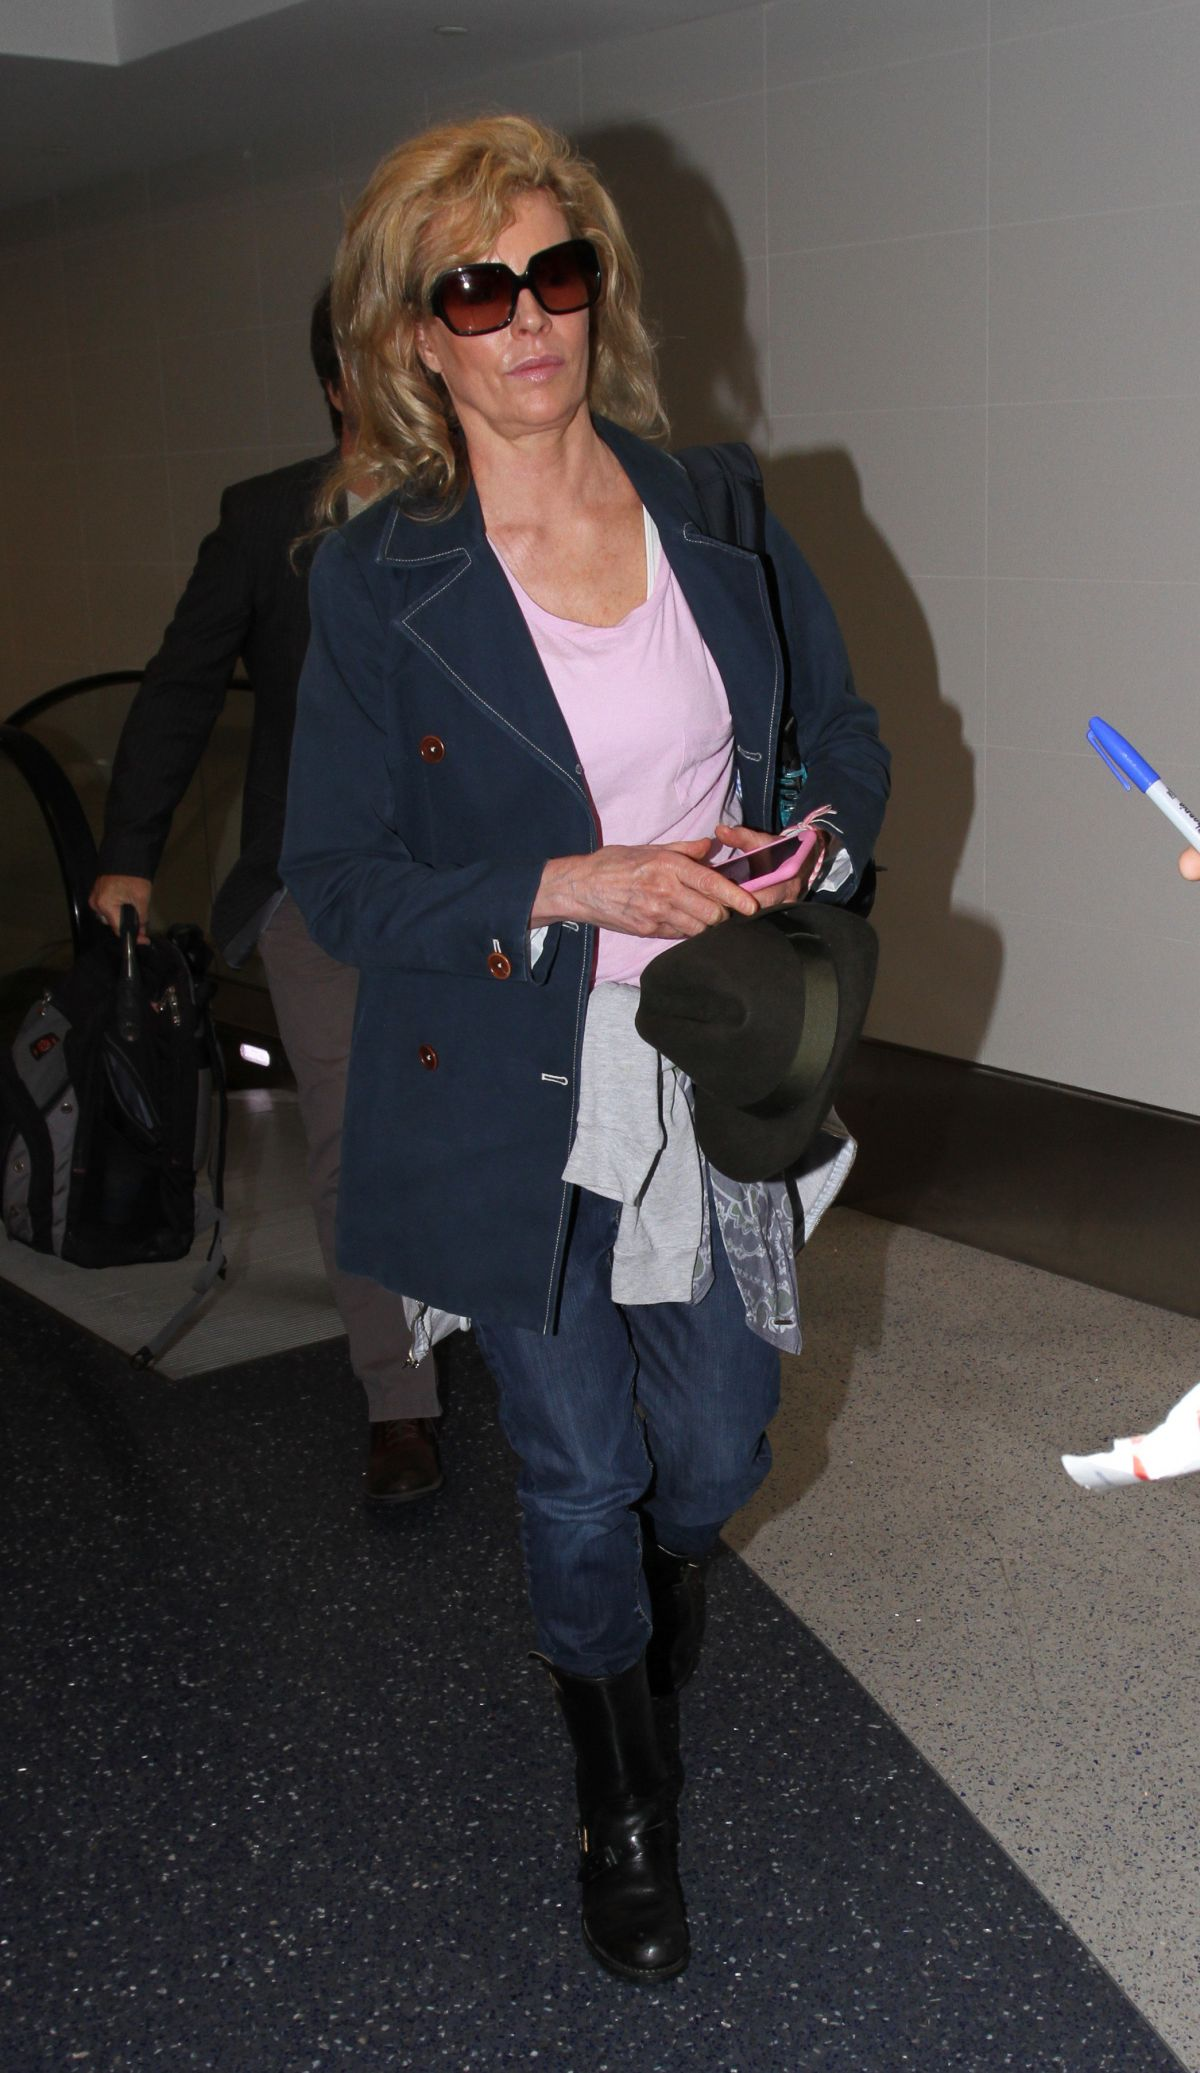 KIM BASINGER at Los Angeles International Airport 06/02/2016